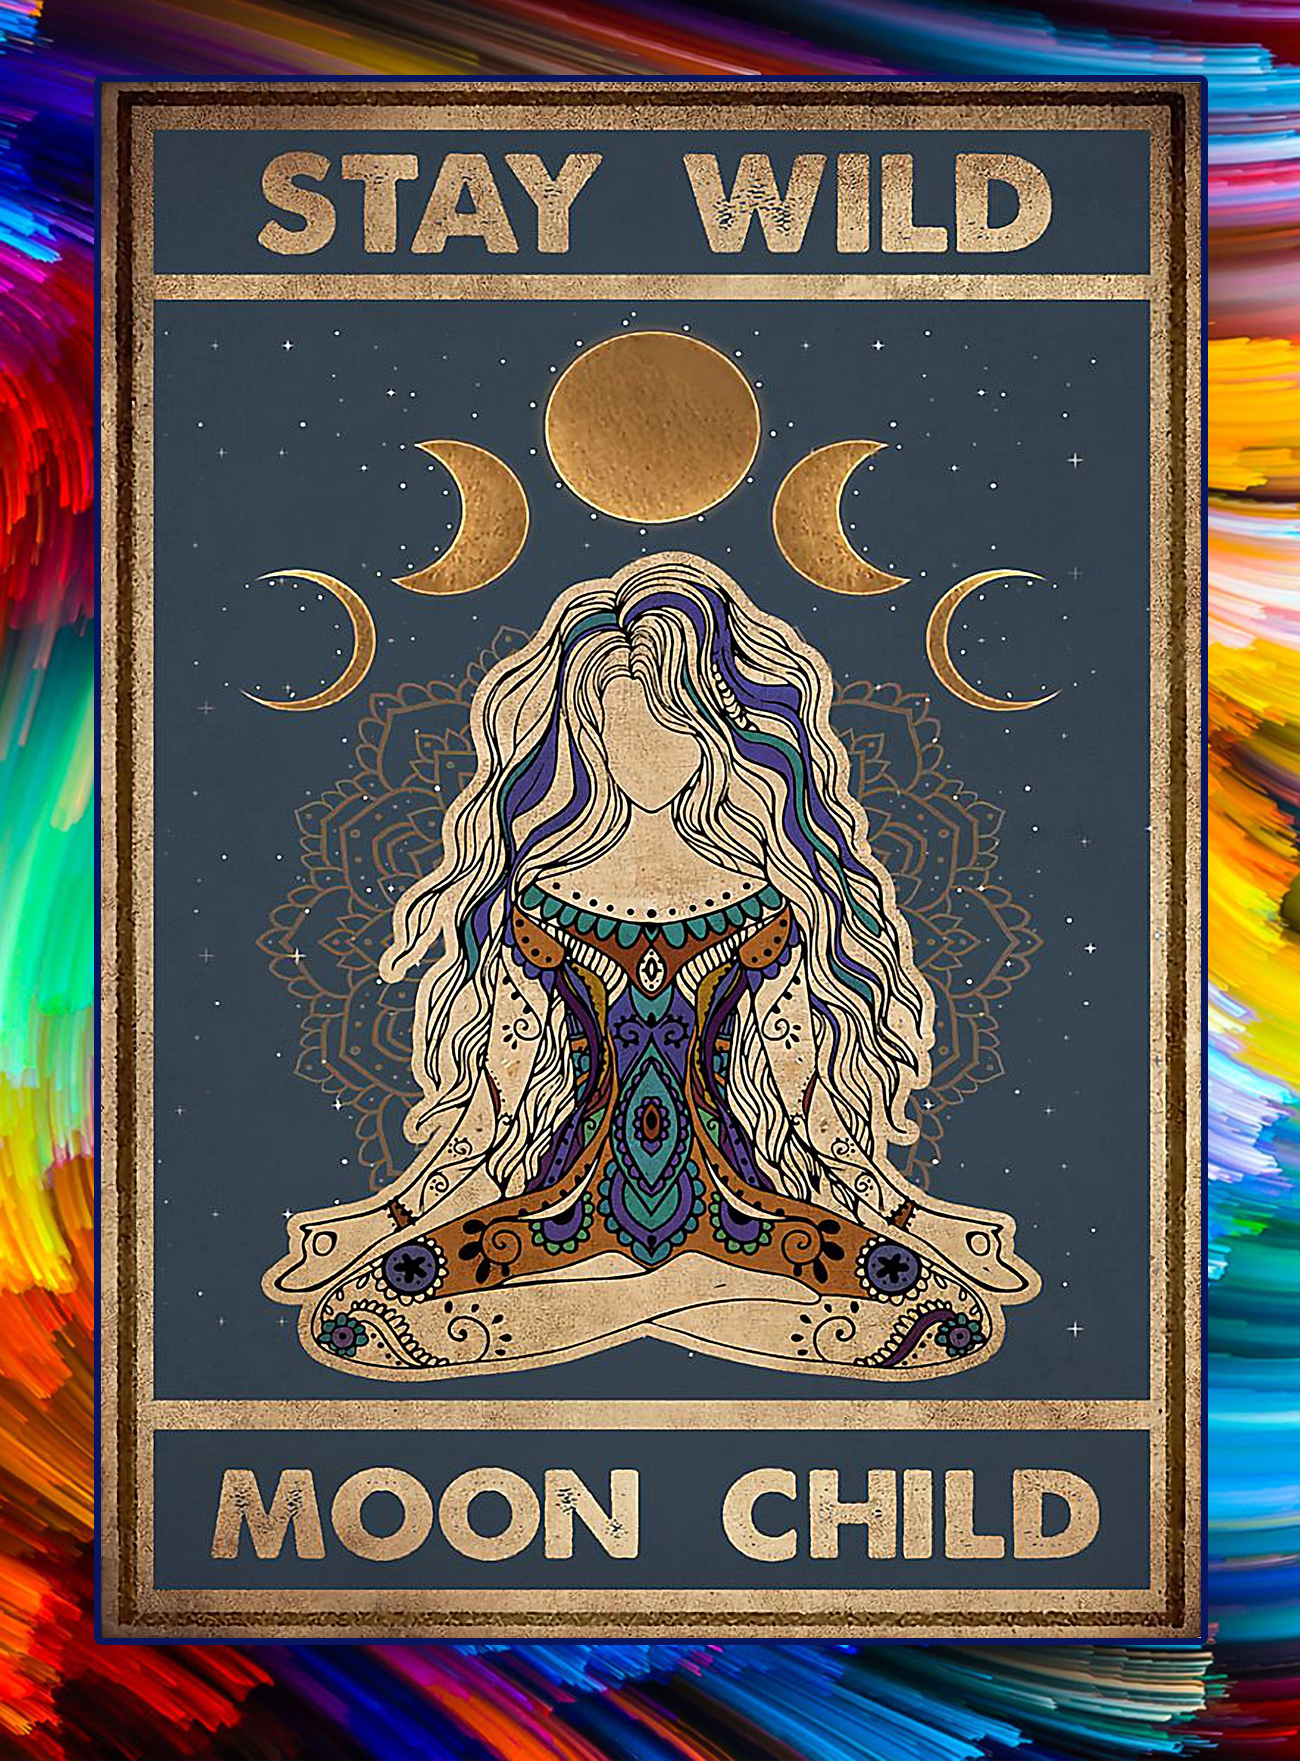 Stay wild moon child poster